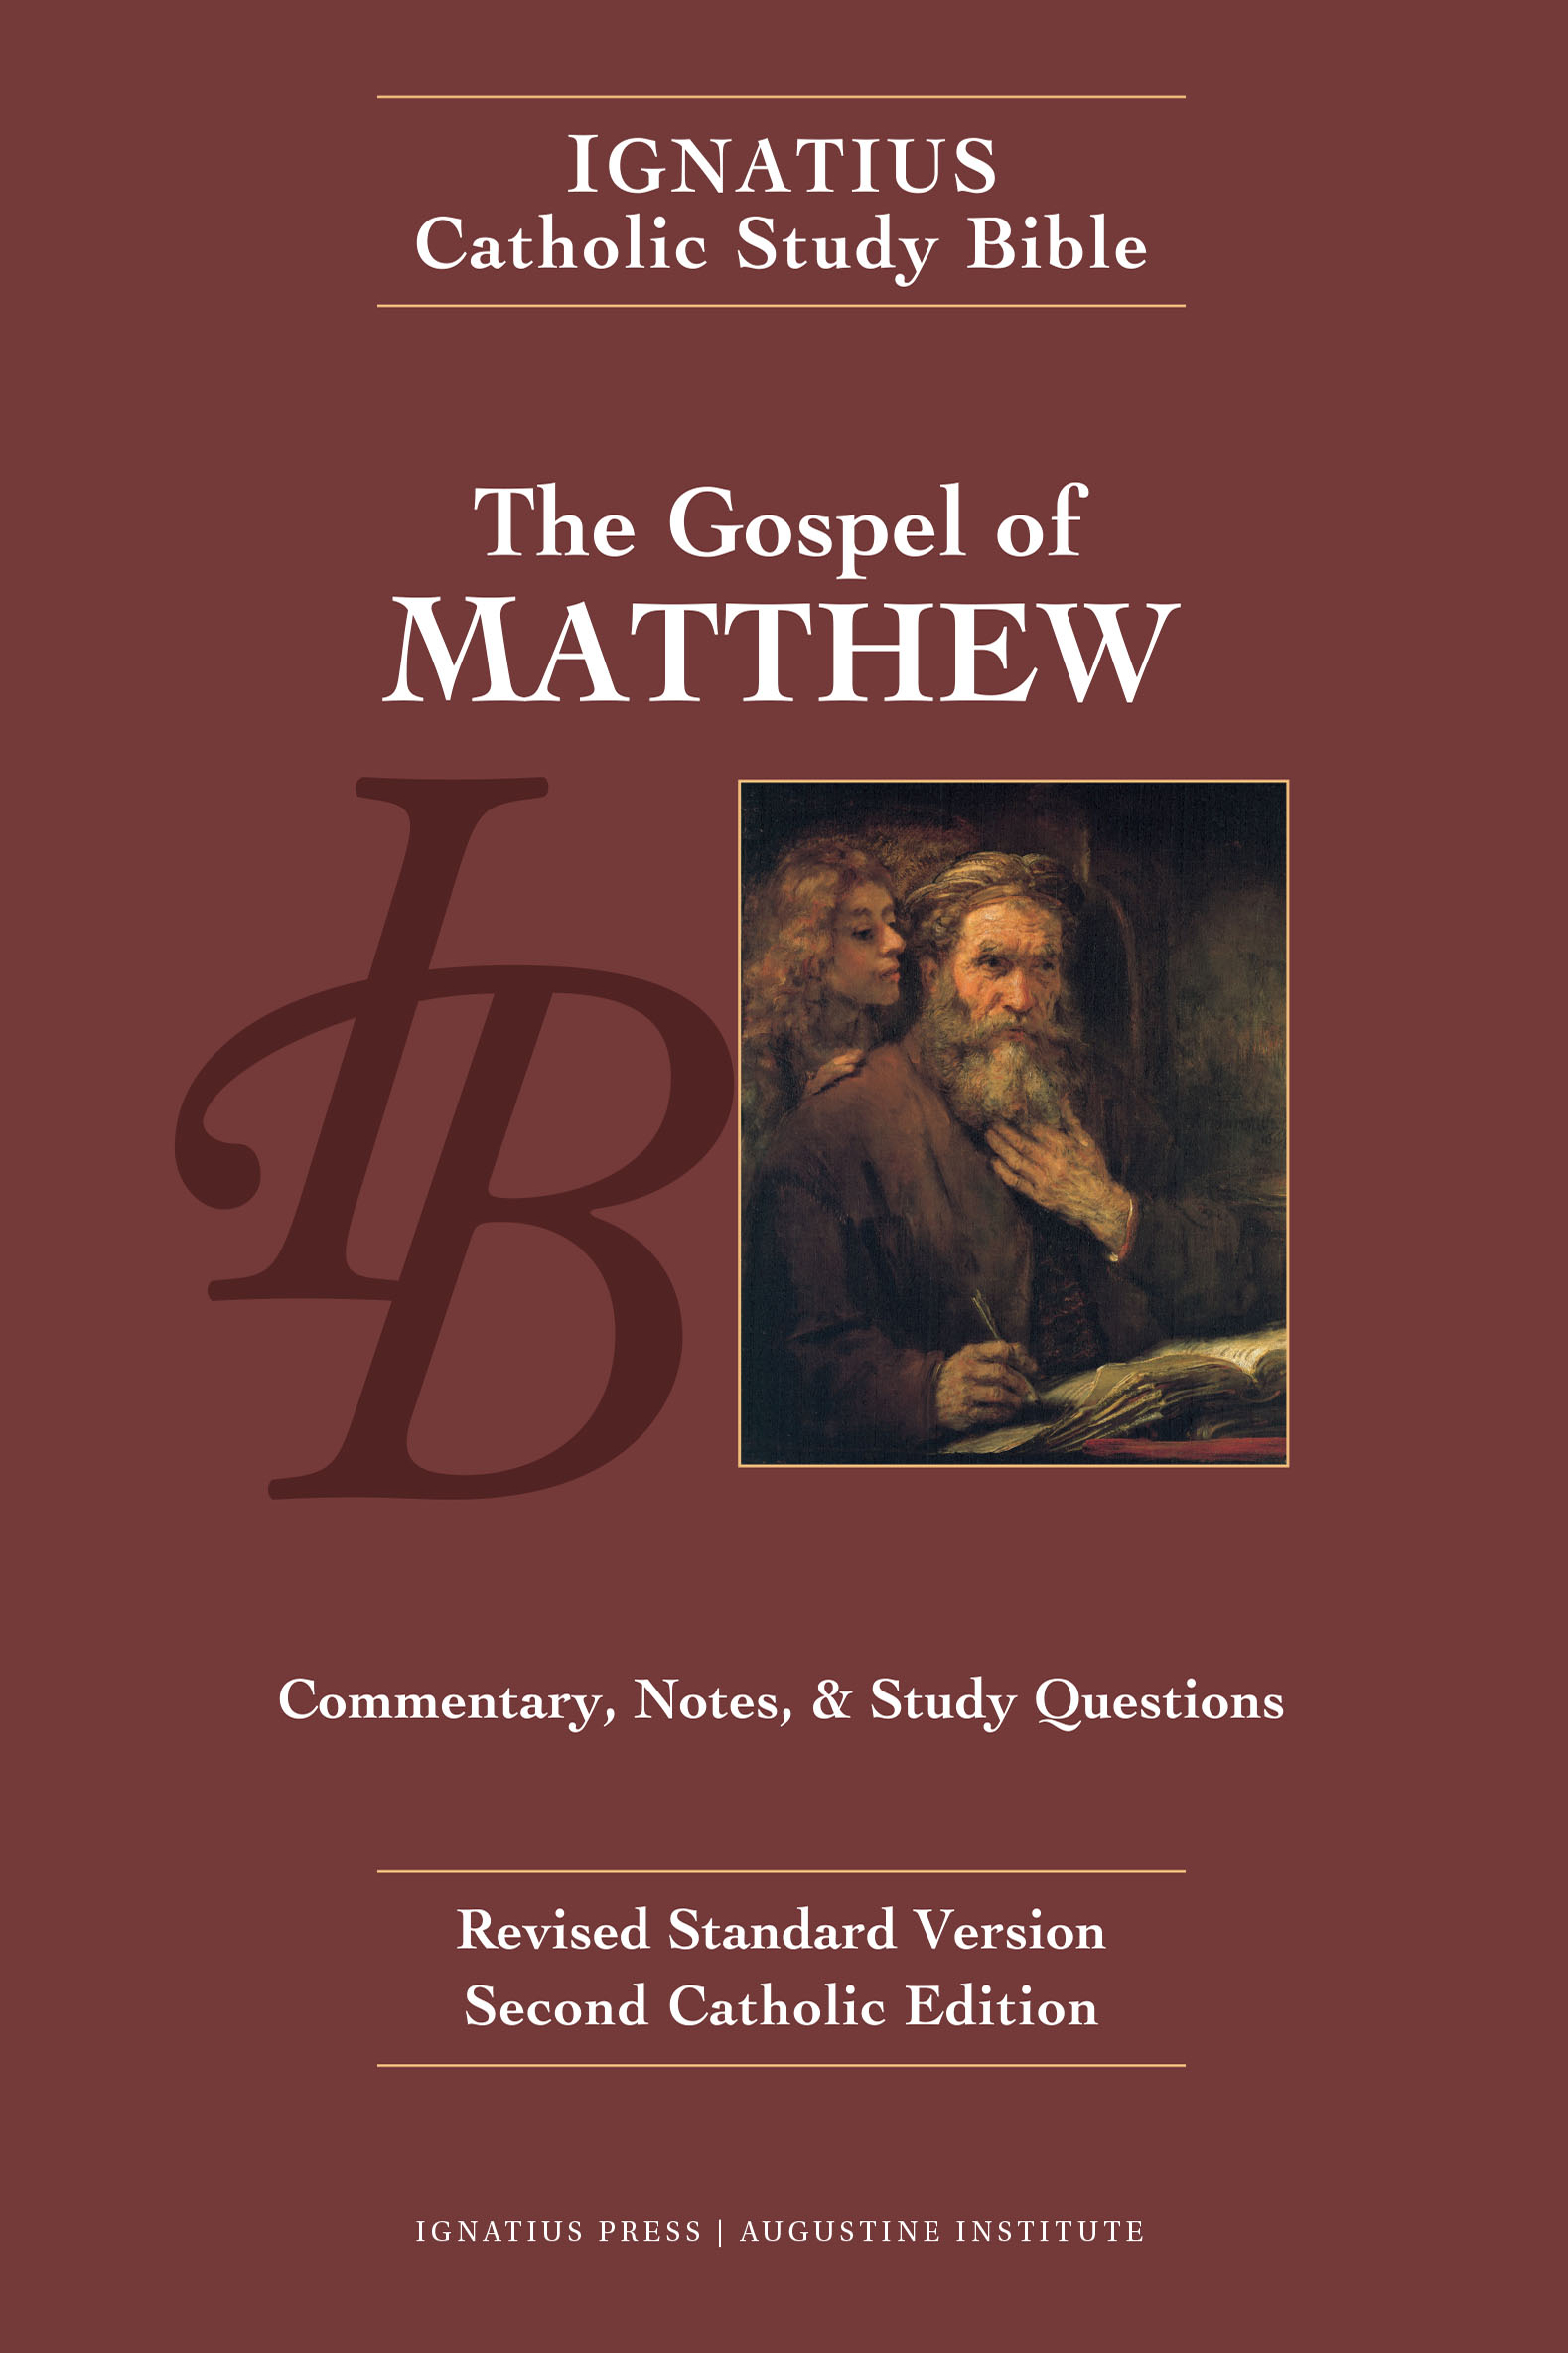 historical inaccuracies in the gospels of matthew Canonical gospels of matthew, mark, luke and john, plus the apocryphal gospel of thomas, bore any close relationship to what he actually said and but no verse anywhere in the canonical gospels expresses jesus' opinion on the role of circumcision among his followers the same can be said of.